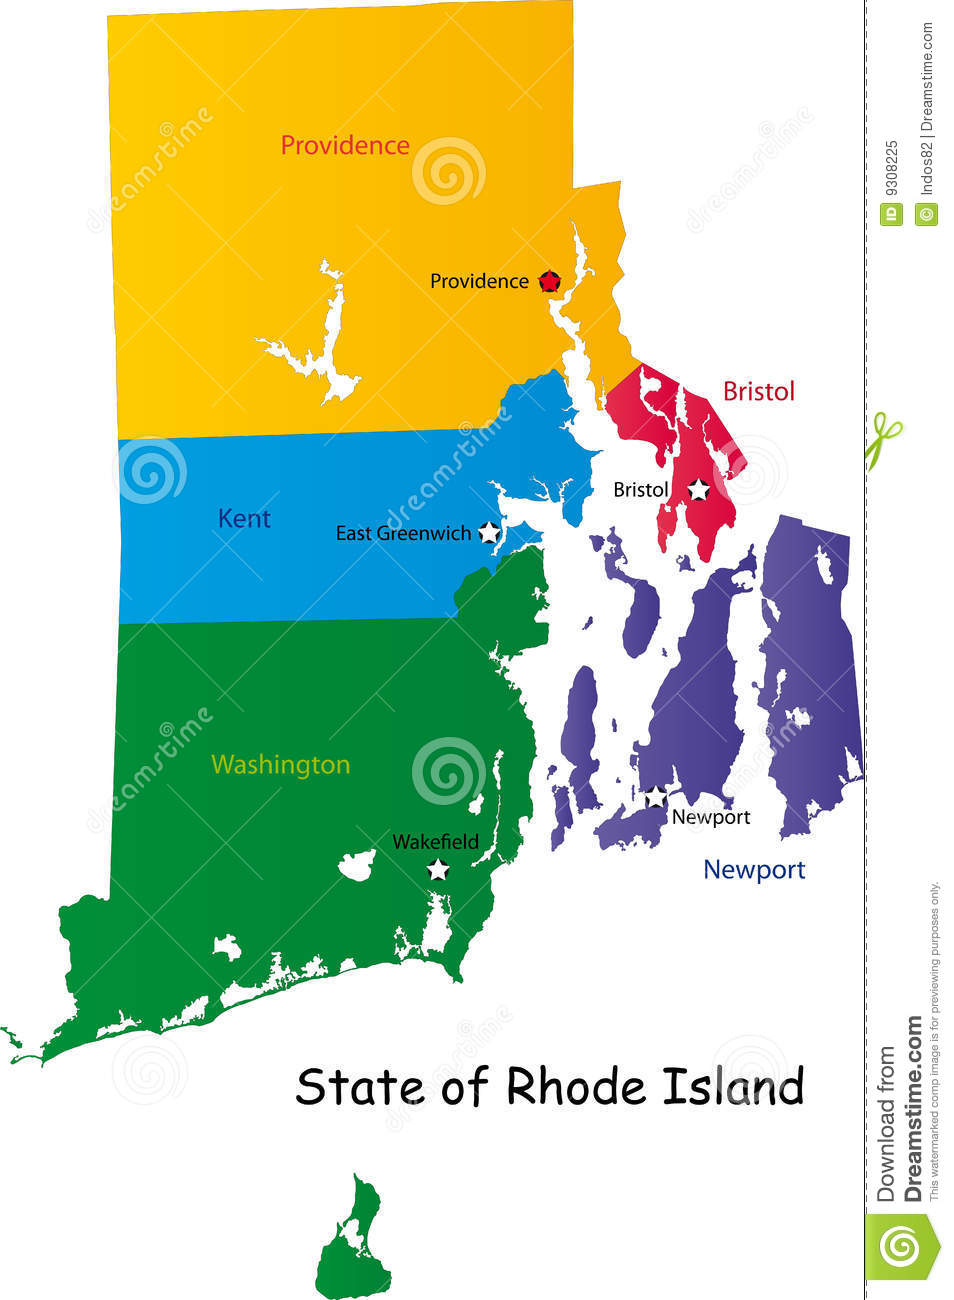 Map of Rhode Island state